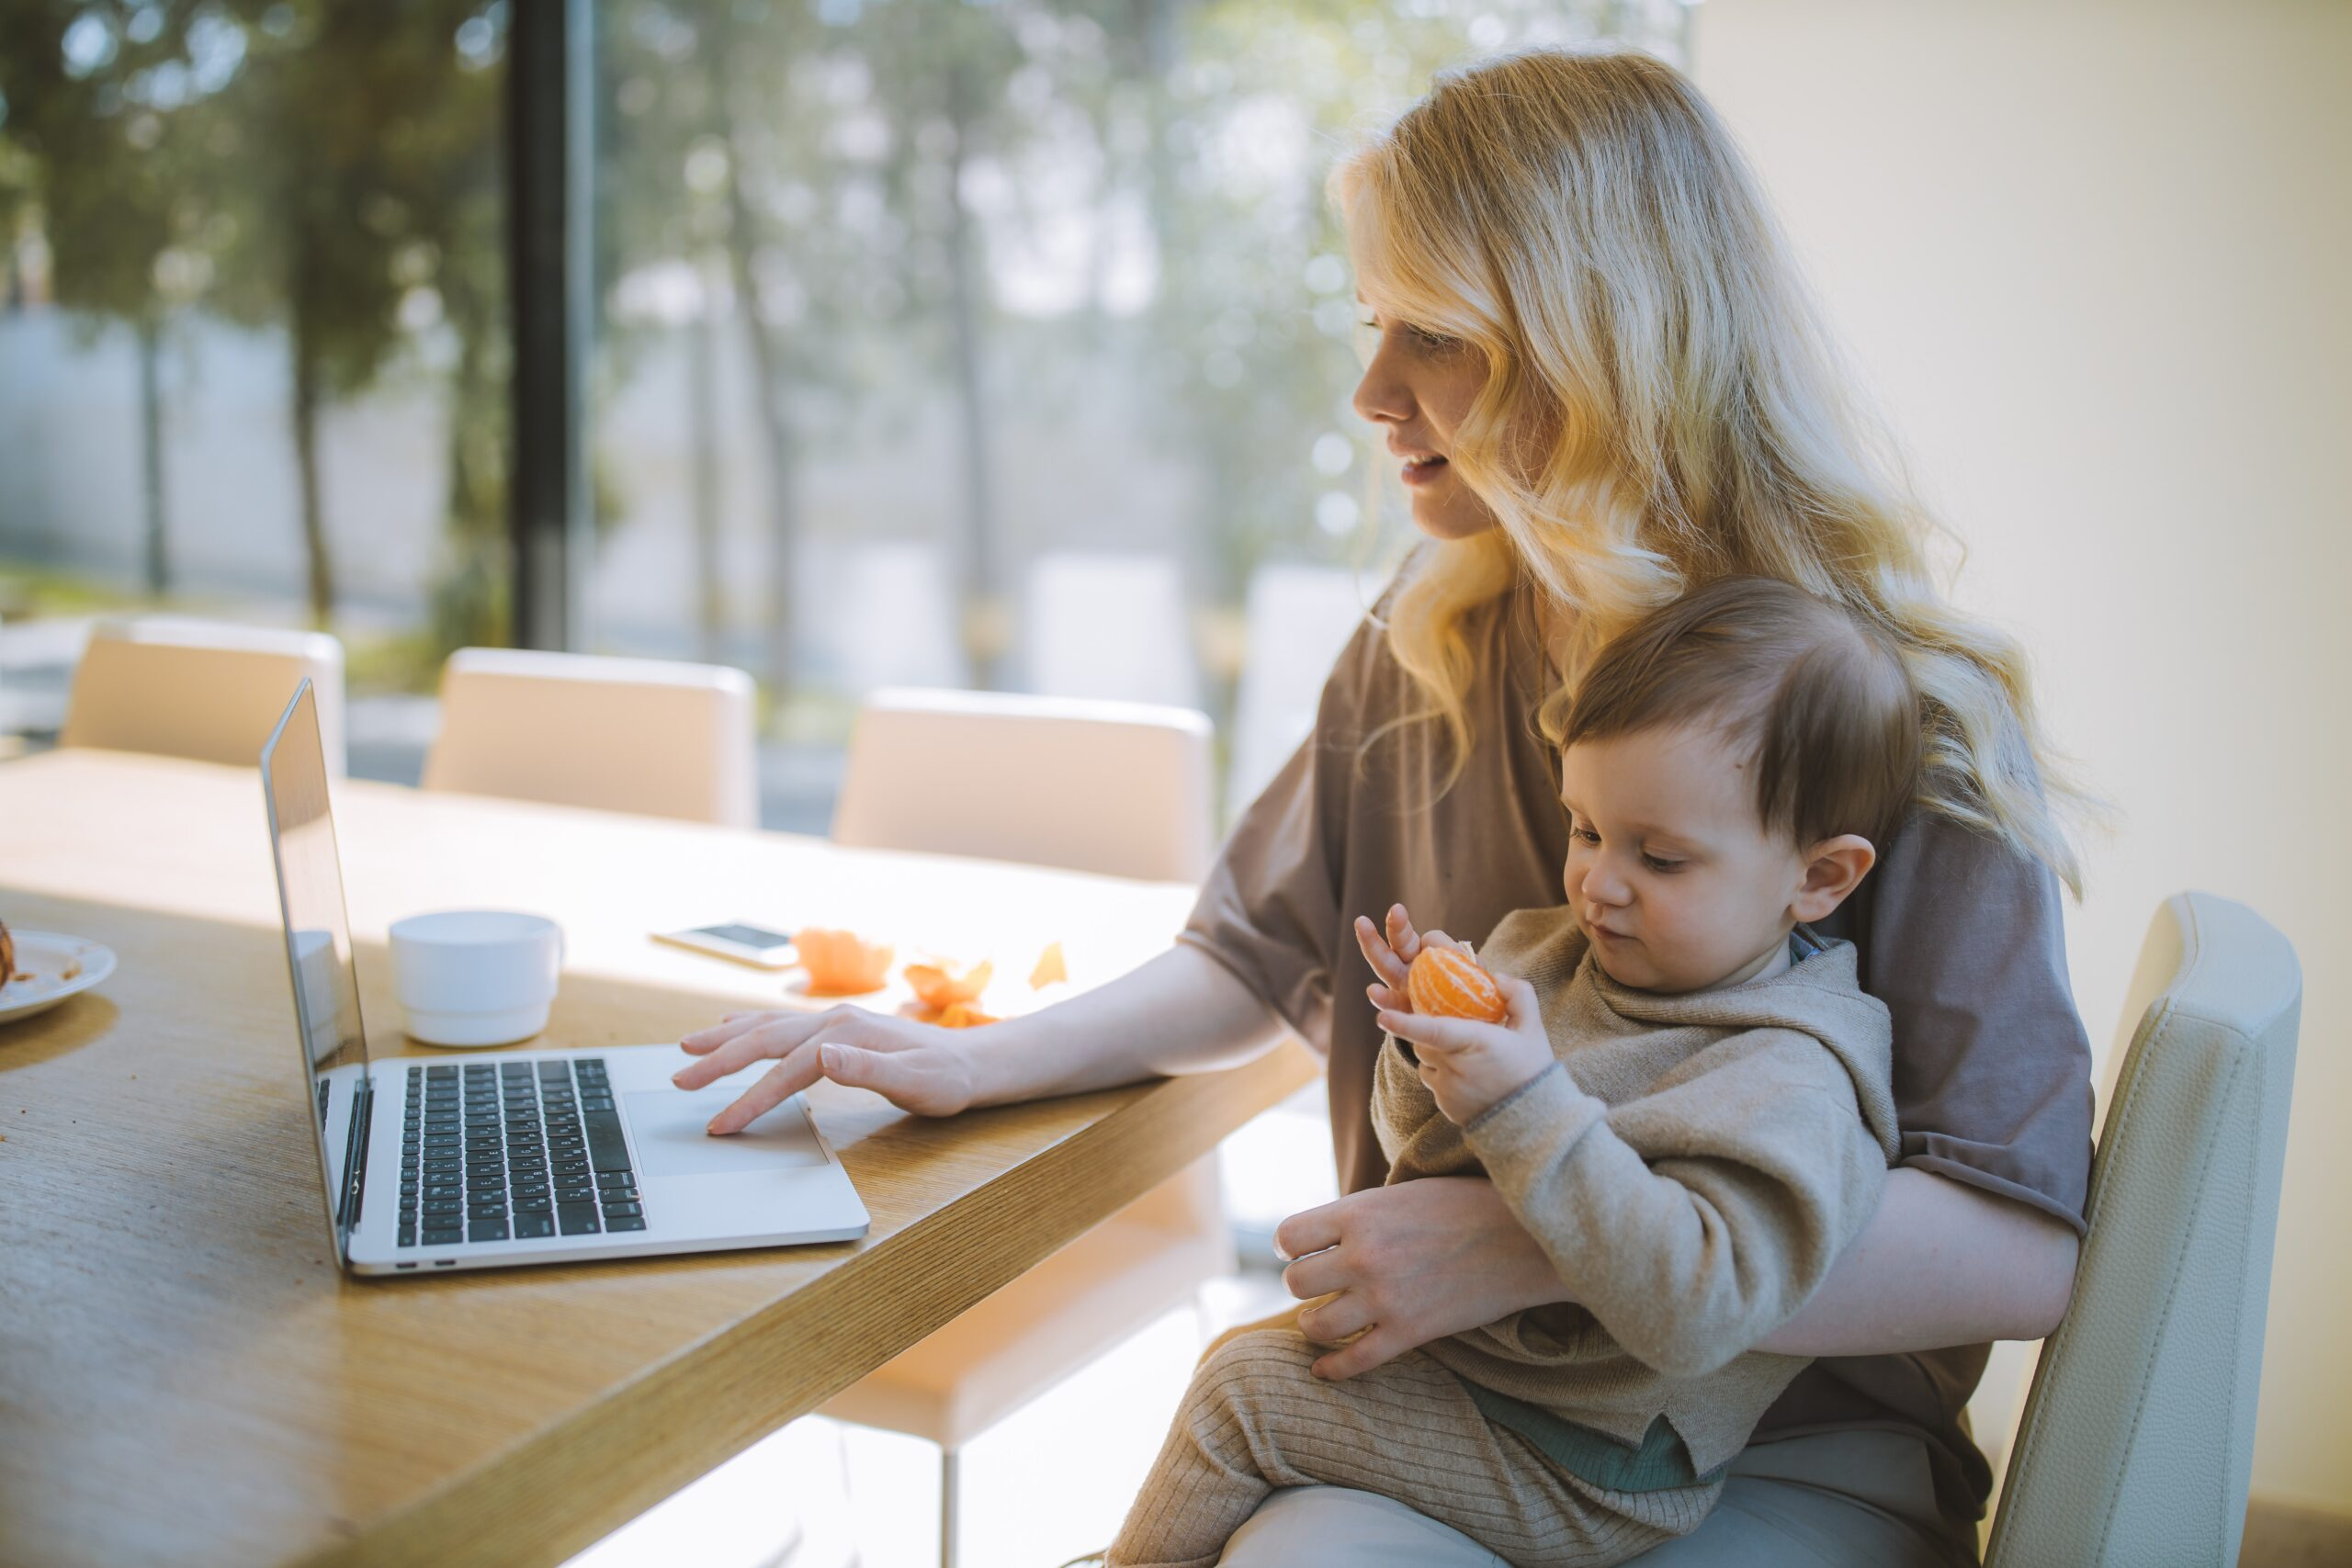 happy mom with toddler on lap. the toddler is eating an orange fruit and the woman is smiling